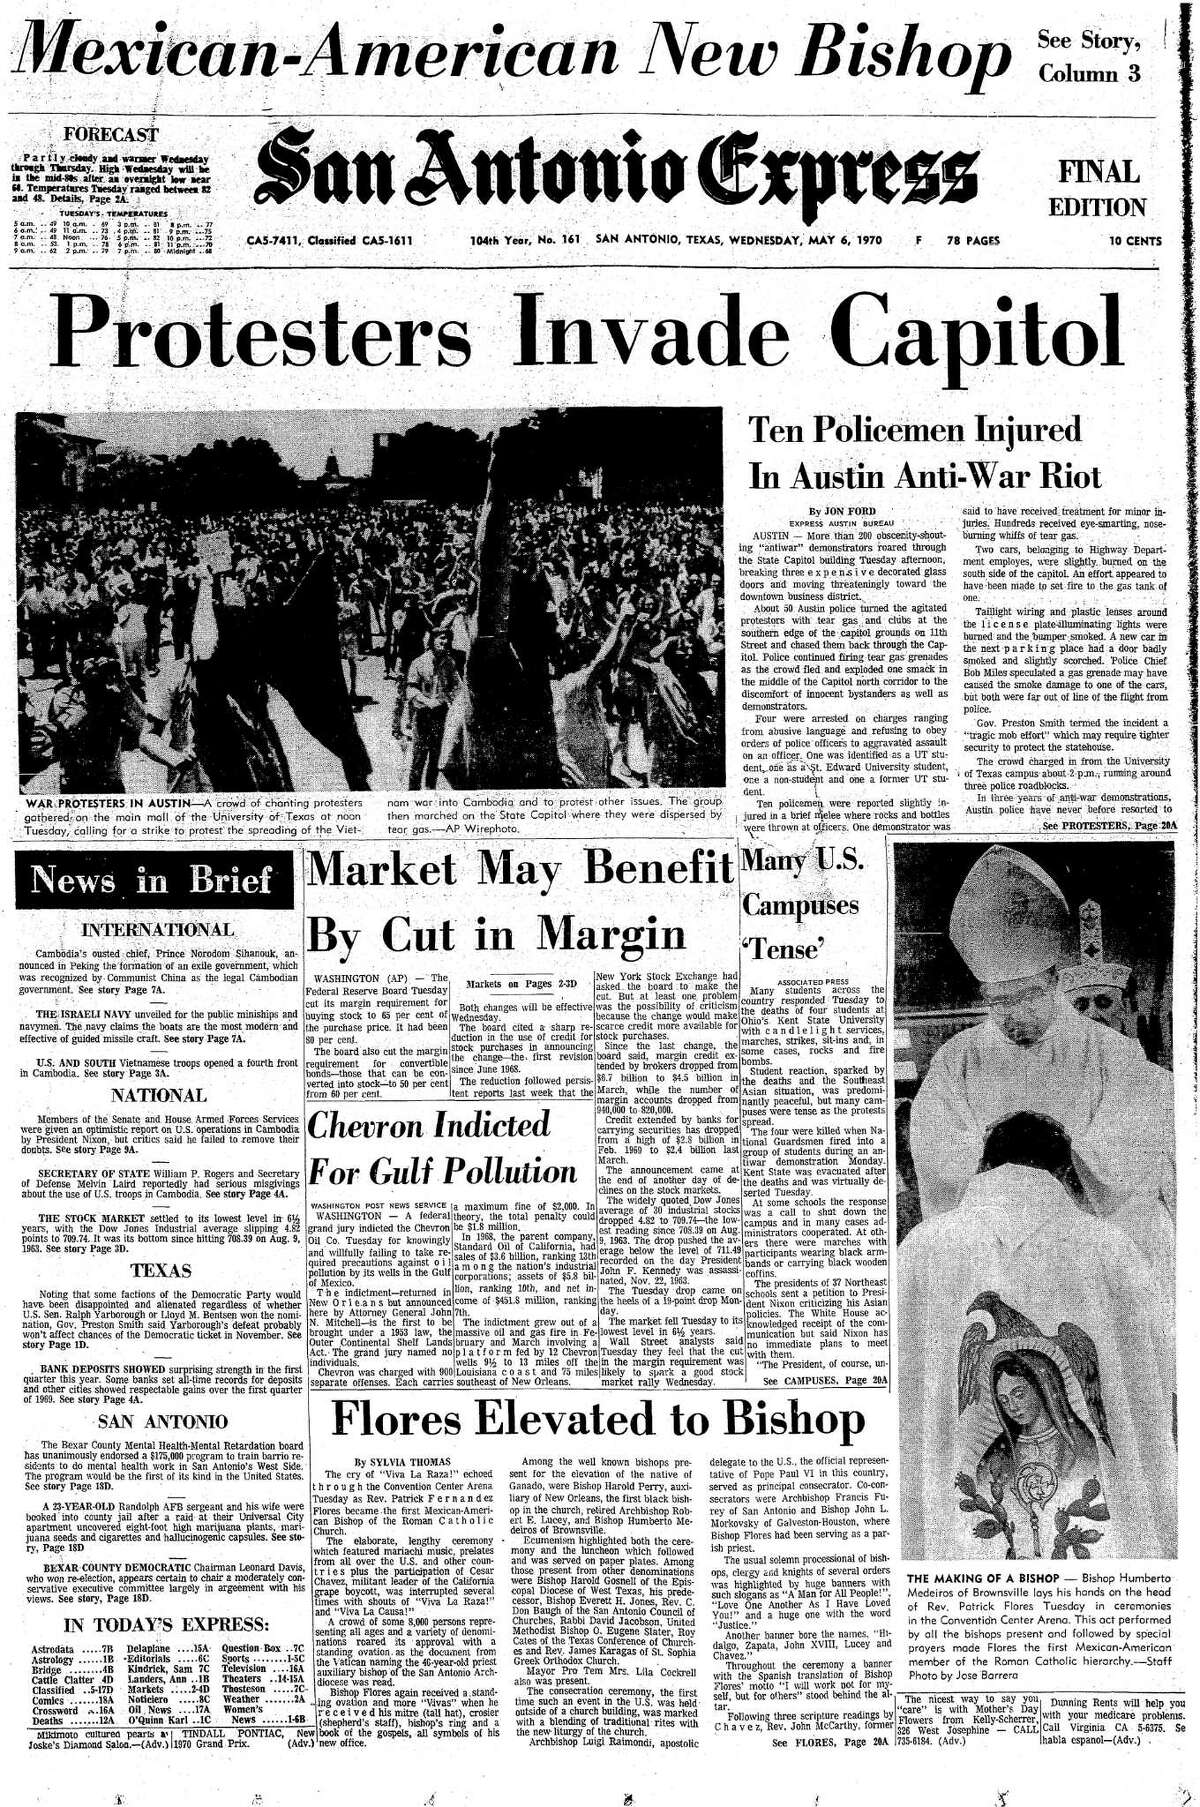 May 6, 1970 EN Cover: Rev. Patrick Fernandez Flores becomes the first Mexican-American bishop of the Roman Catholic Church.